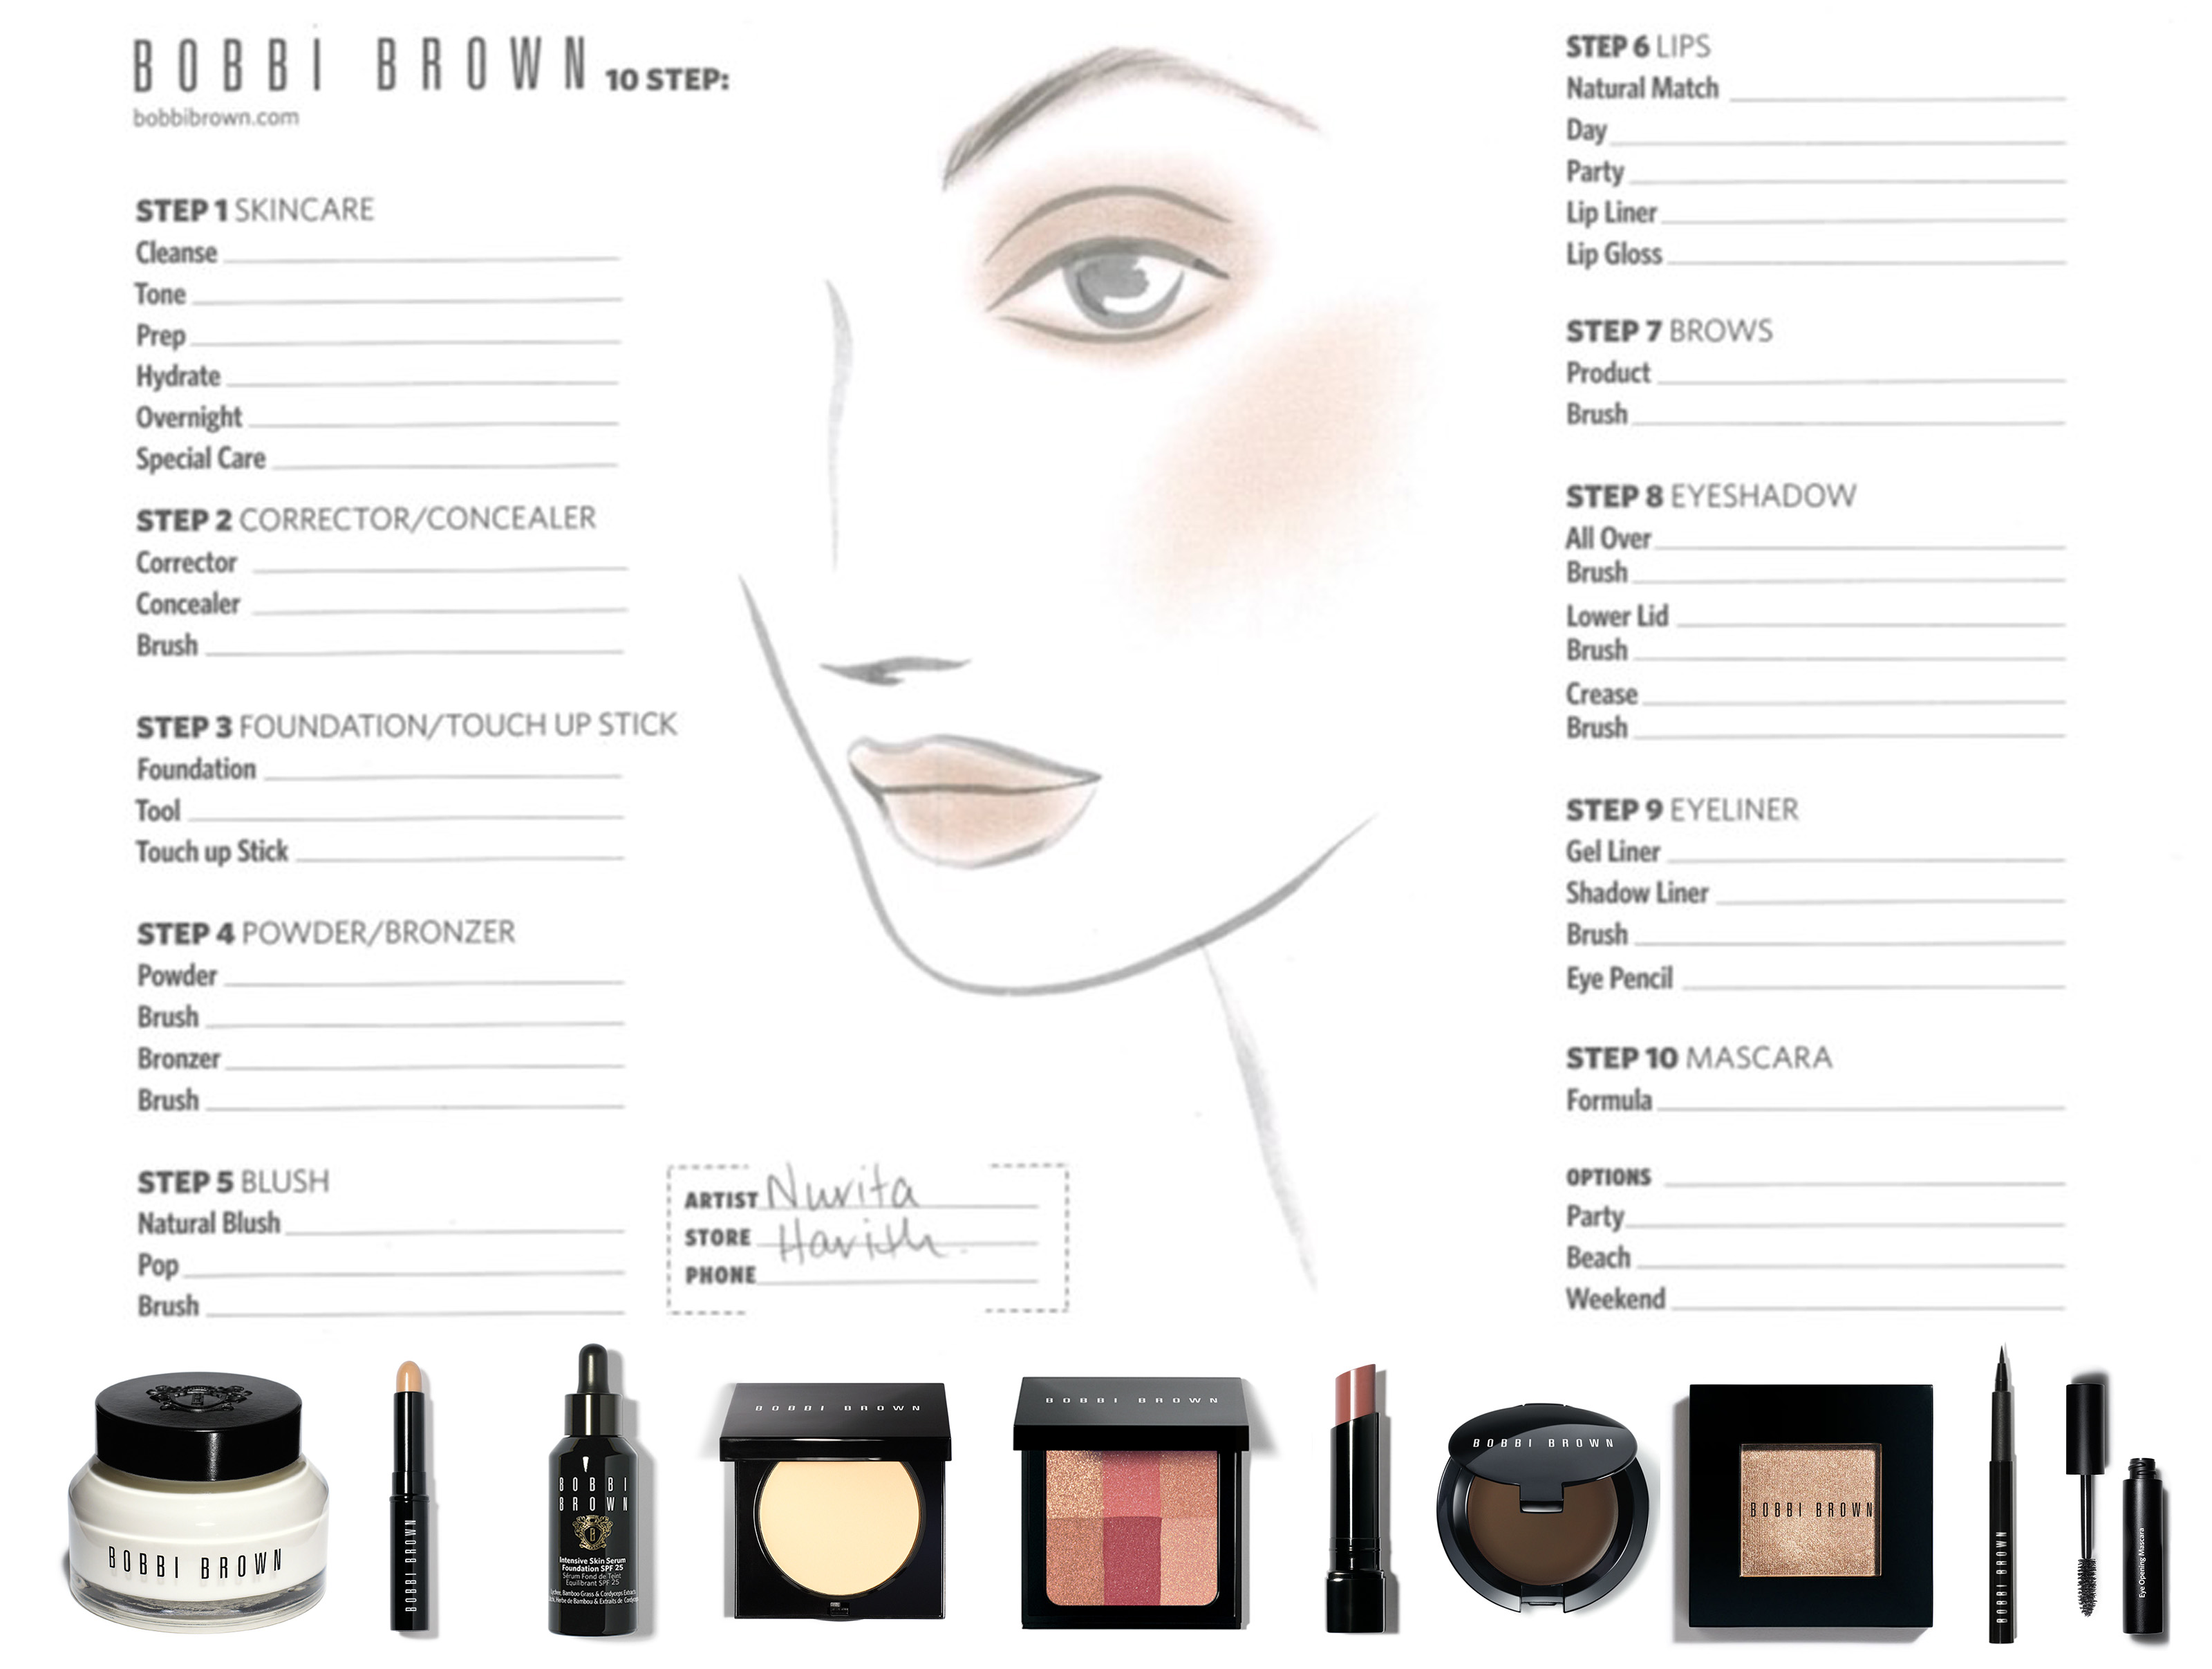 Bobbi Brown For Nurita Harith